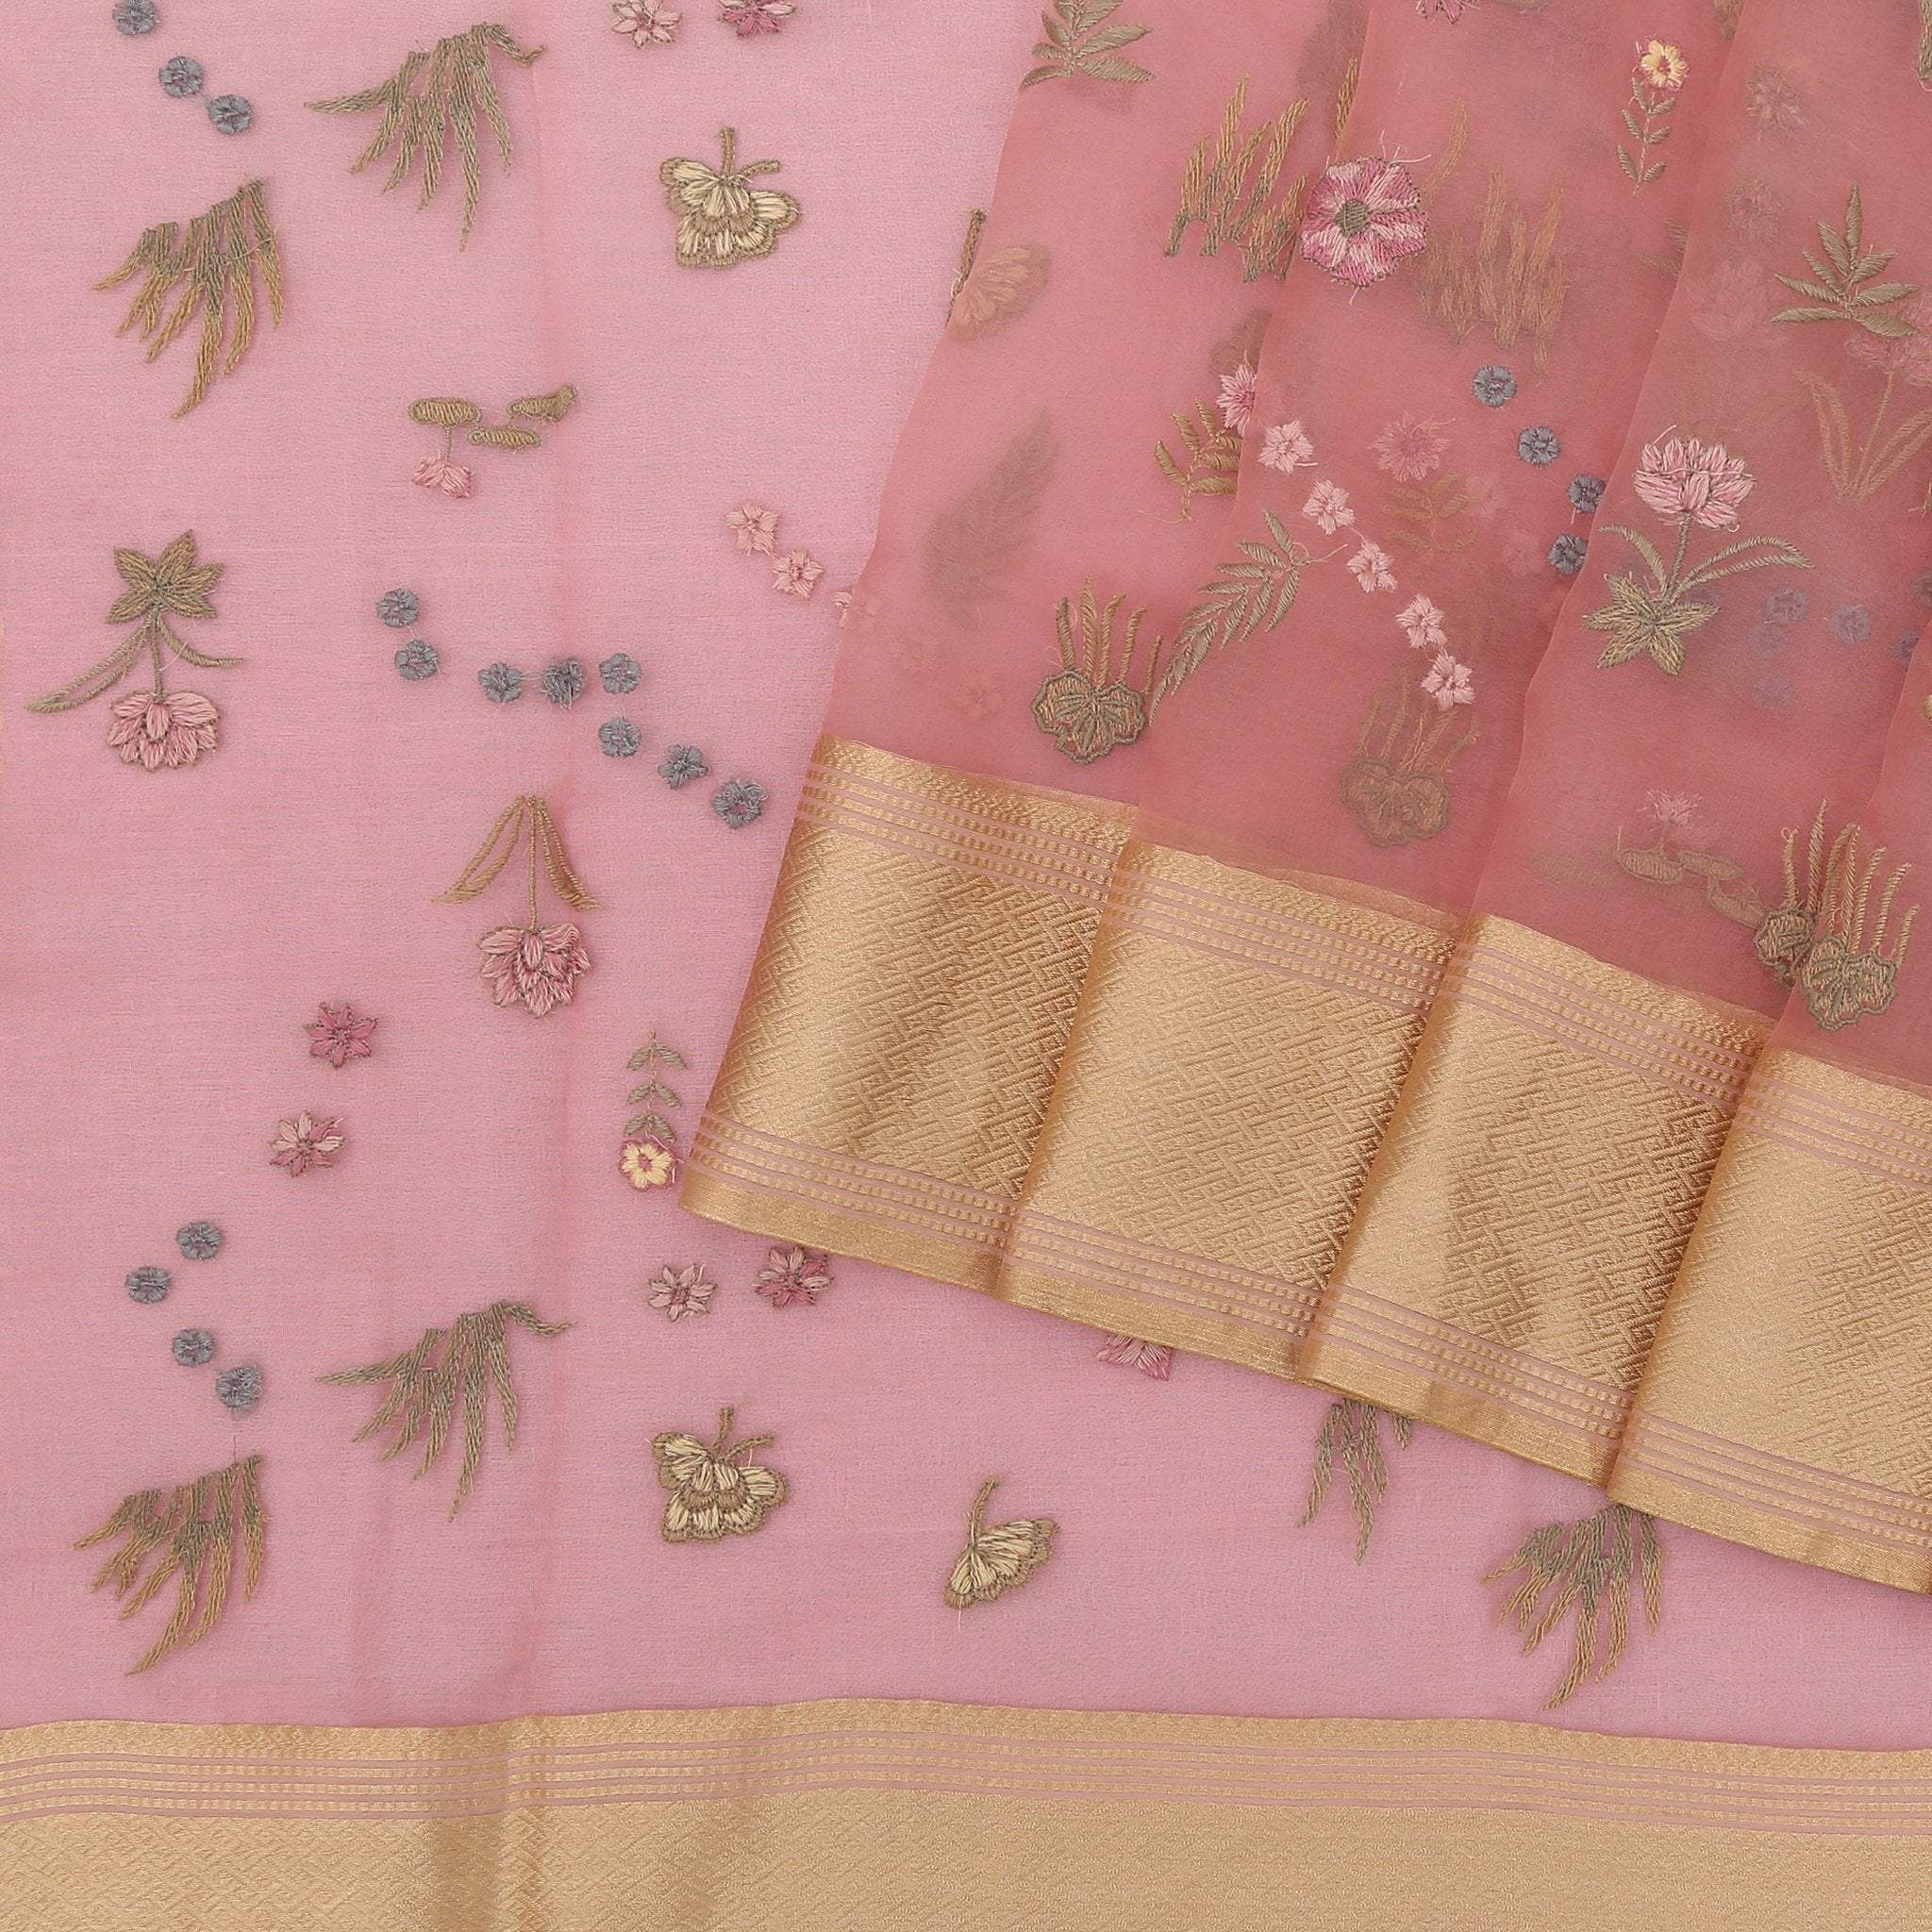 Blush-Pink-Organza-Saree-with-Threadwork-Embroidery.